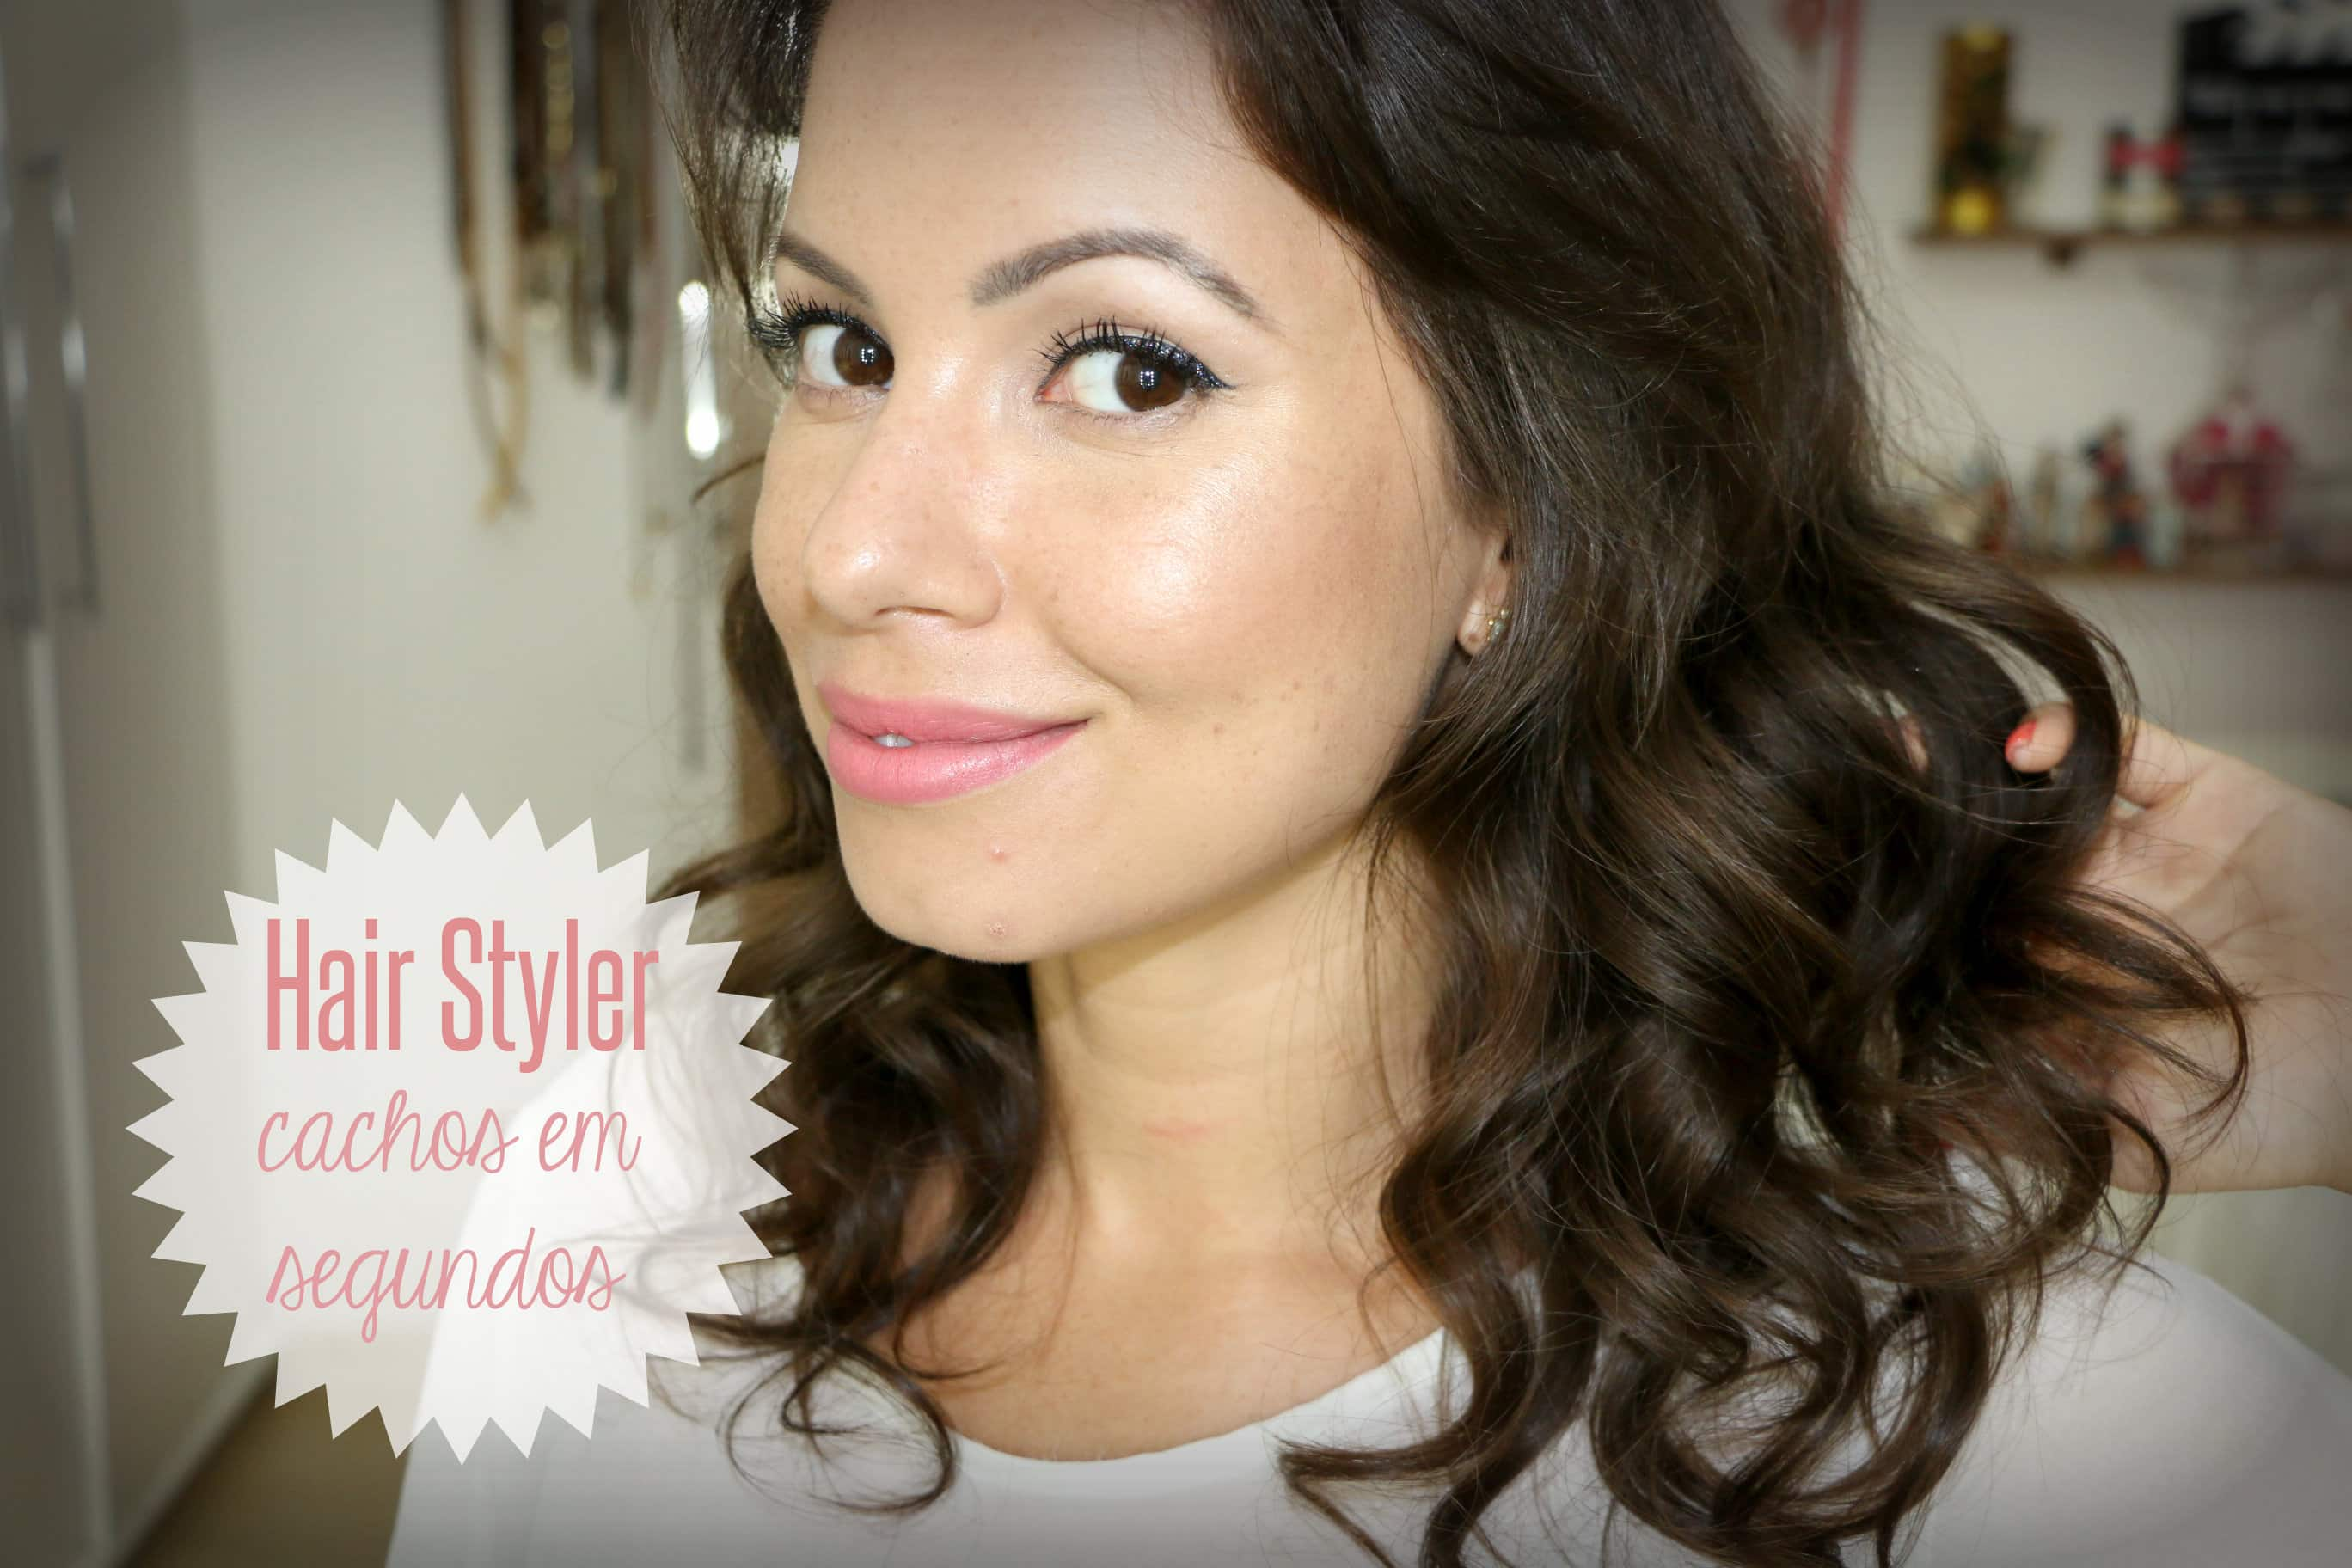 juliana goes hair styler miracurl Hair Styler Polishop | Cachos Perfeitos, na Hora!